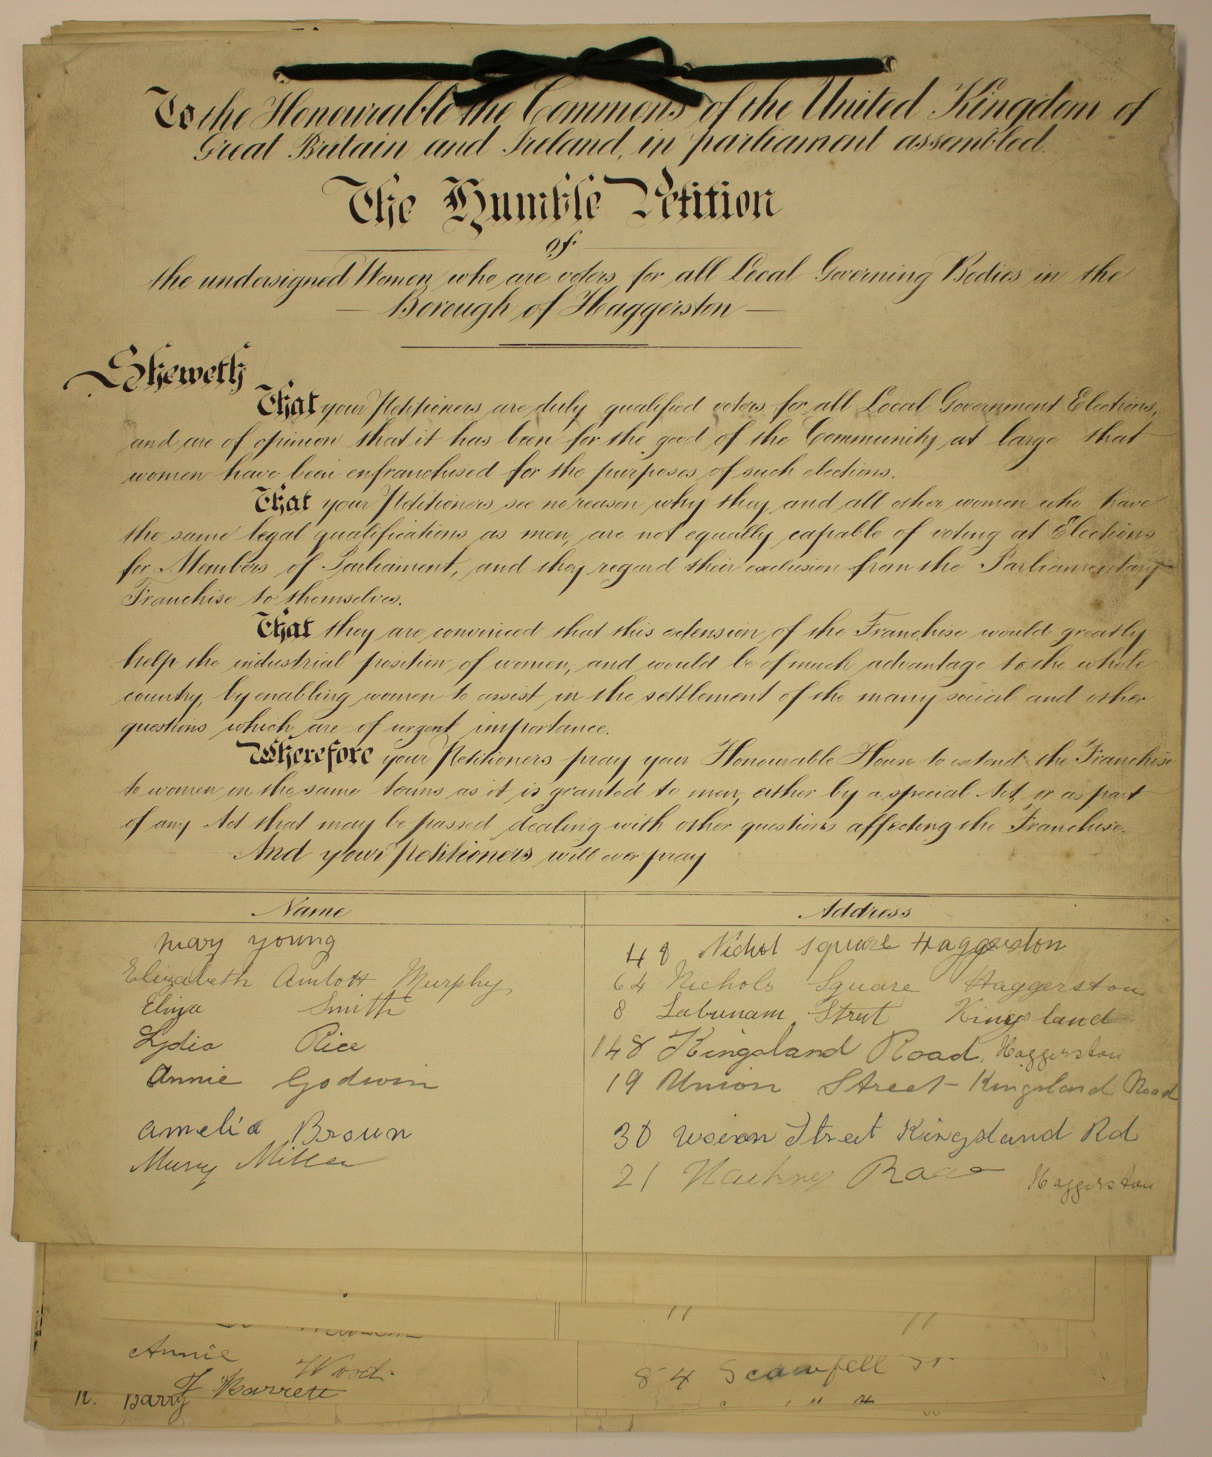 This petition has been recently conserved by  Hackney Archives  and the National Conservation Service to commemorate the centenary of The Representation of the People Act (1918).